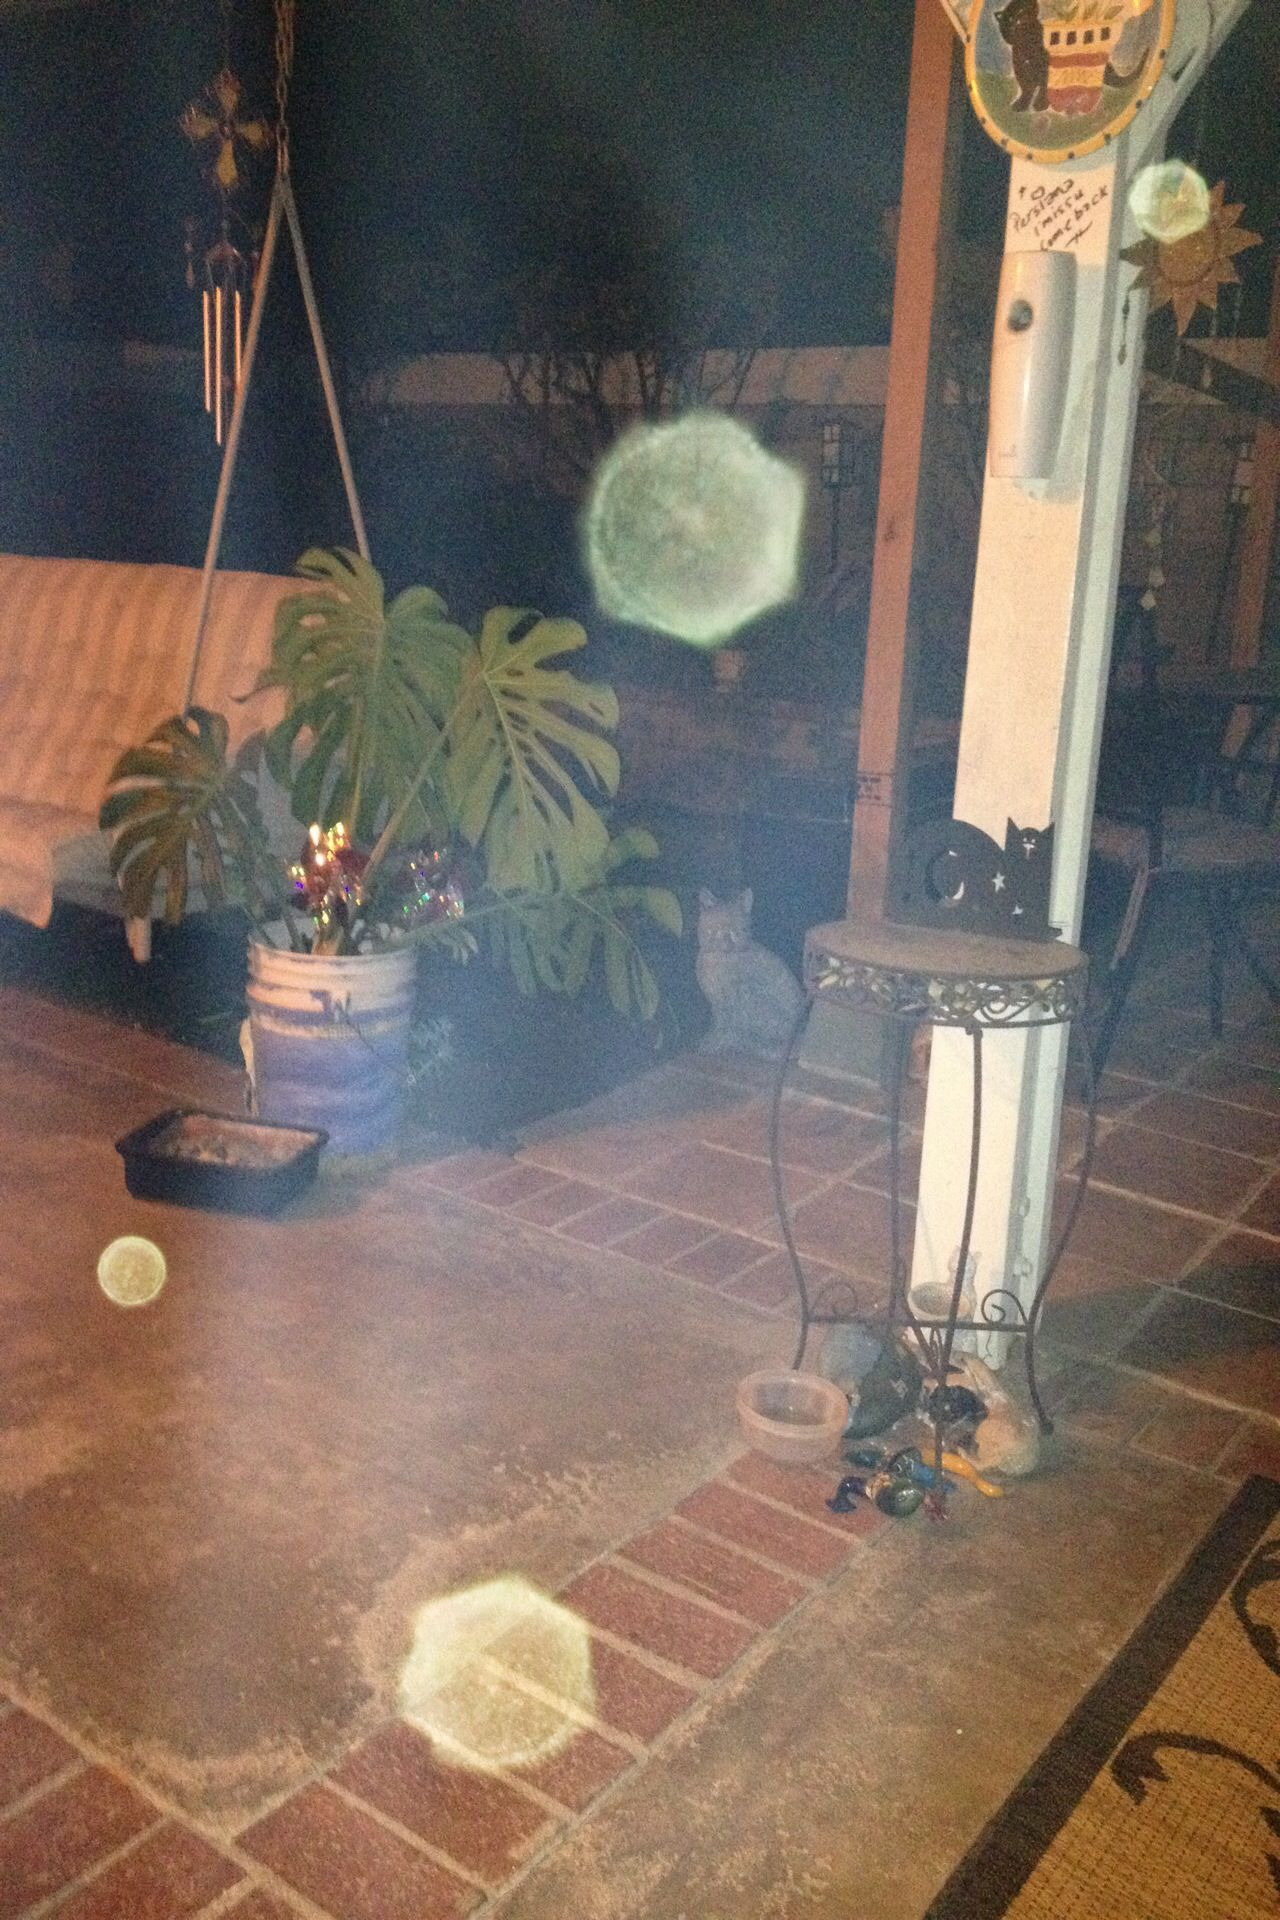 My Cam Caught These Orbs And Mist In My Backyard